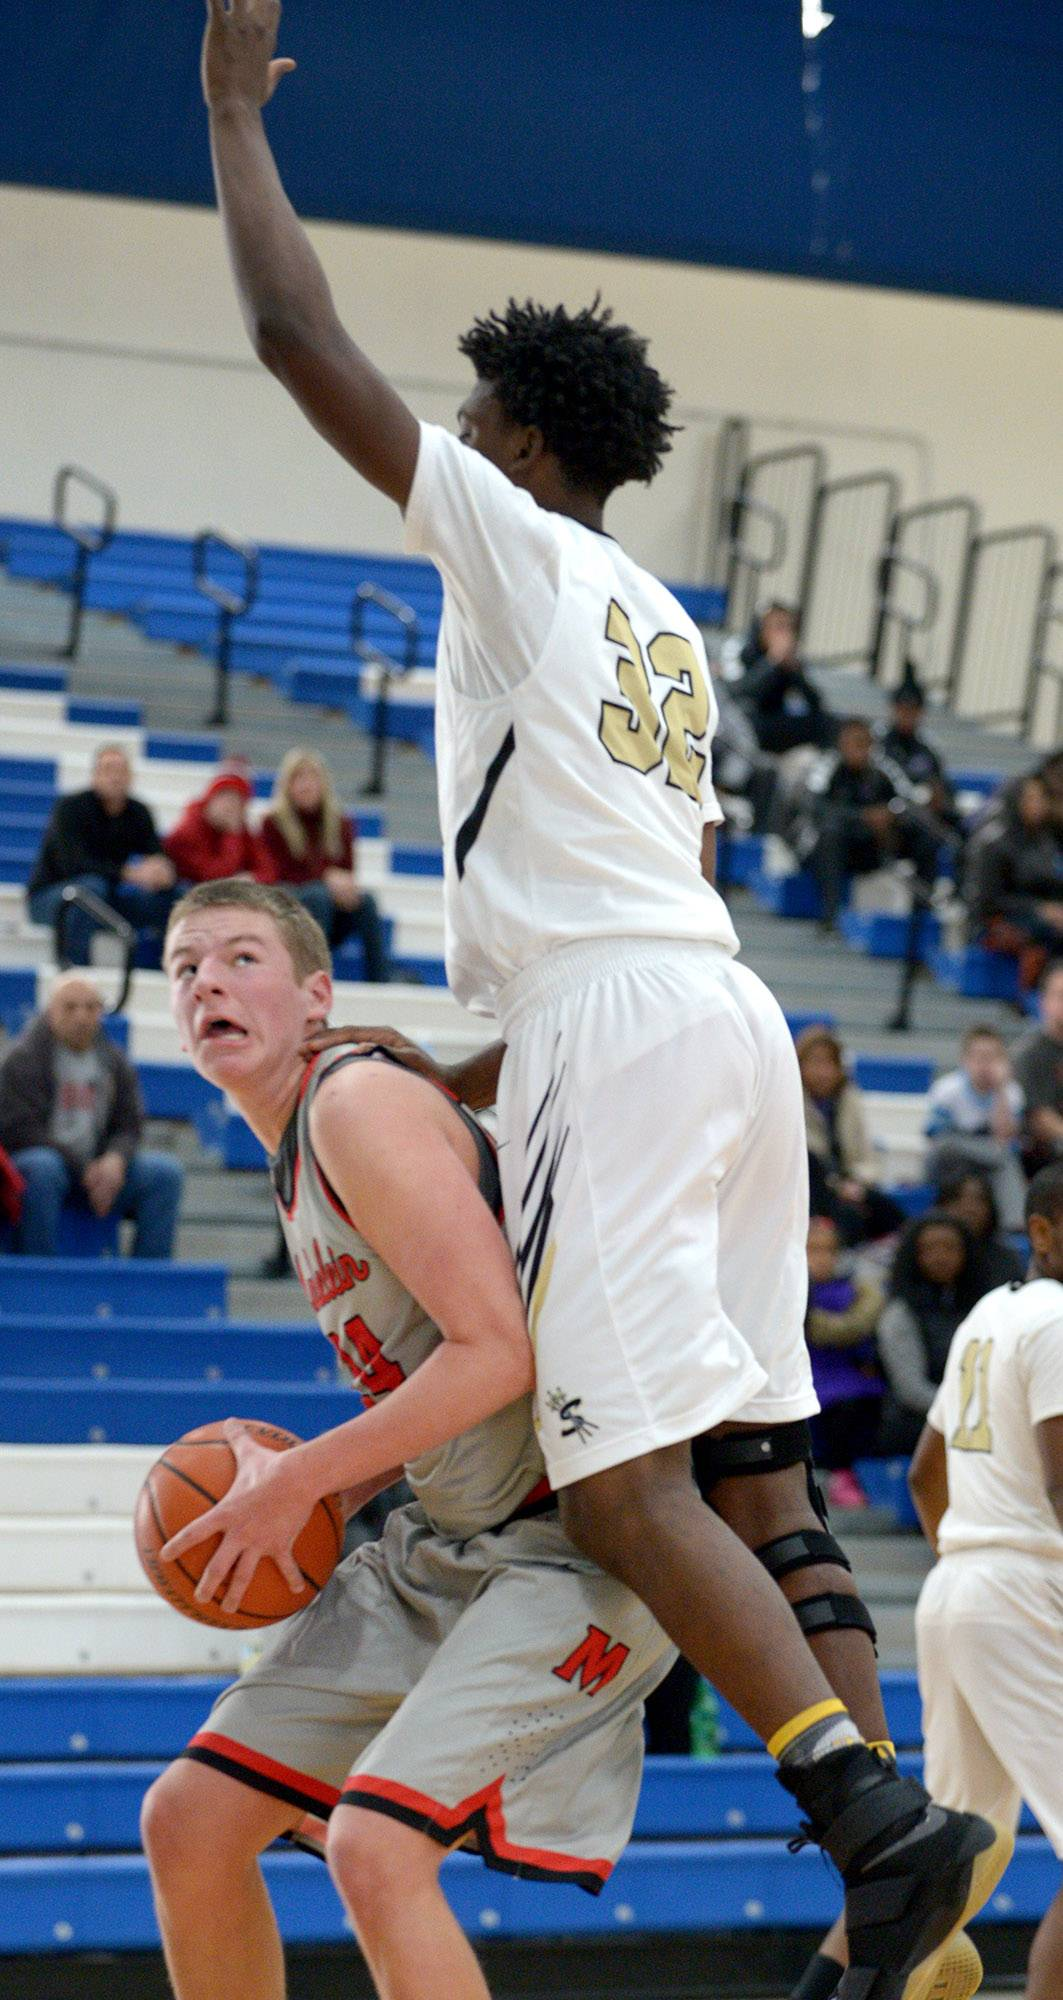 Streamwood's Keenan Cole (32) leaps to block a shot from Mundelein's Jeff Bikus, who fakes him out and moves to the hoop on Saturday at Lake Zurich.